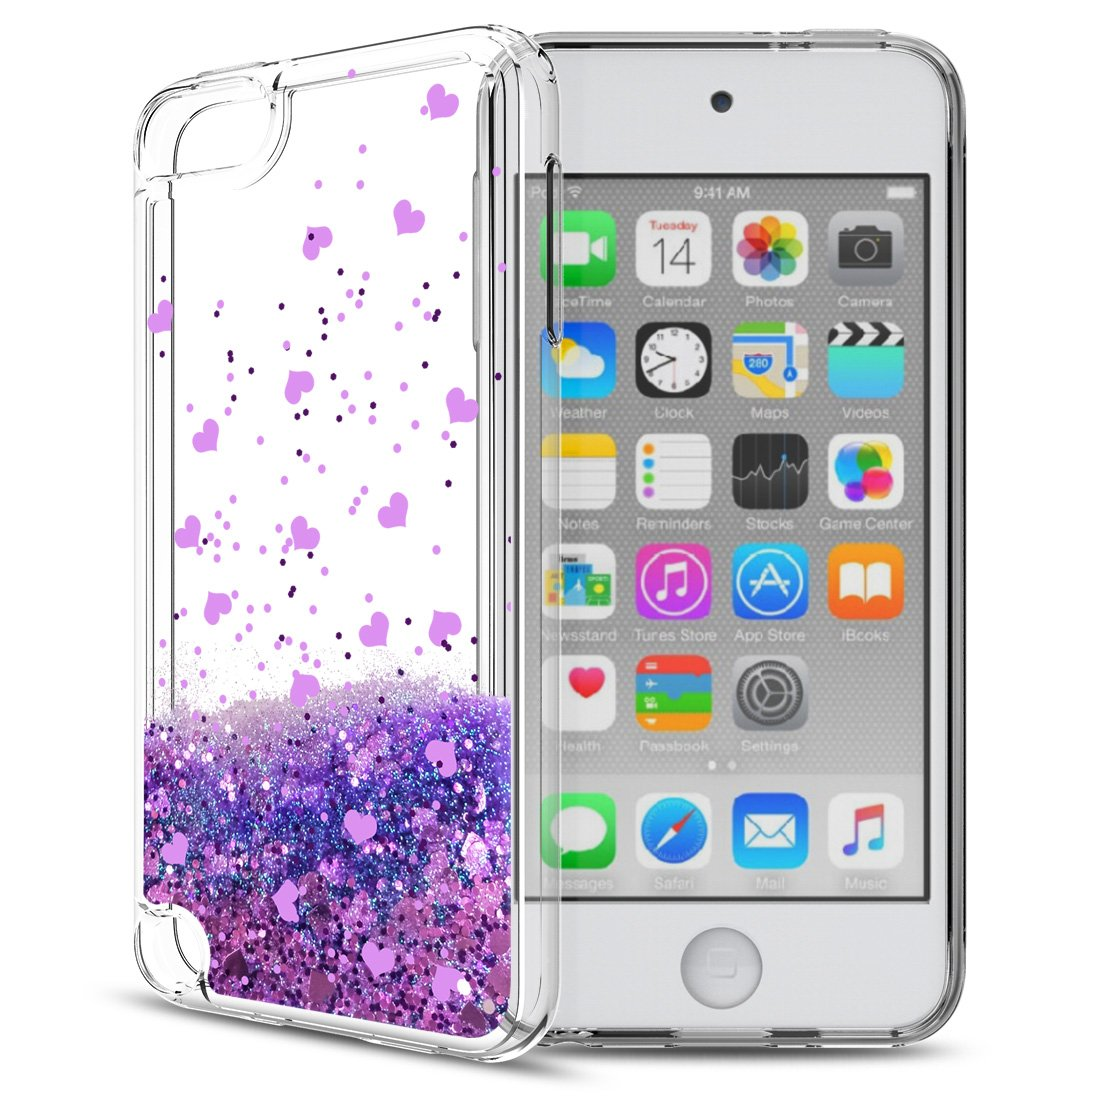 92eef5c5d1 Amazon | iPod Touch 6ケースiPod Touch 5液体ケースwith HDスクリーンプロテクターfor Girls、Aree  Shiny Glitter QuicksandクリアTpu保護電話ケースfor Apple iPod ...